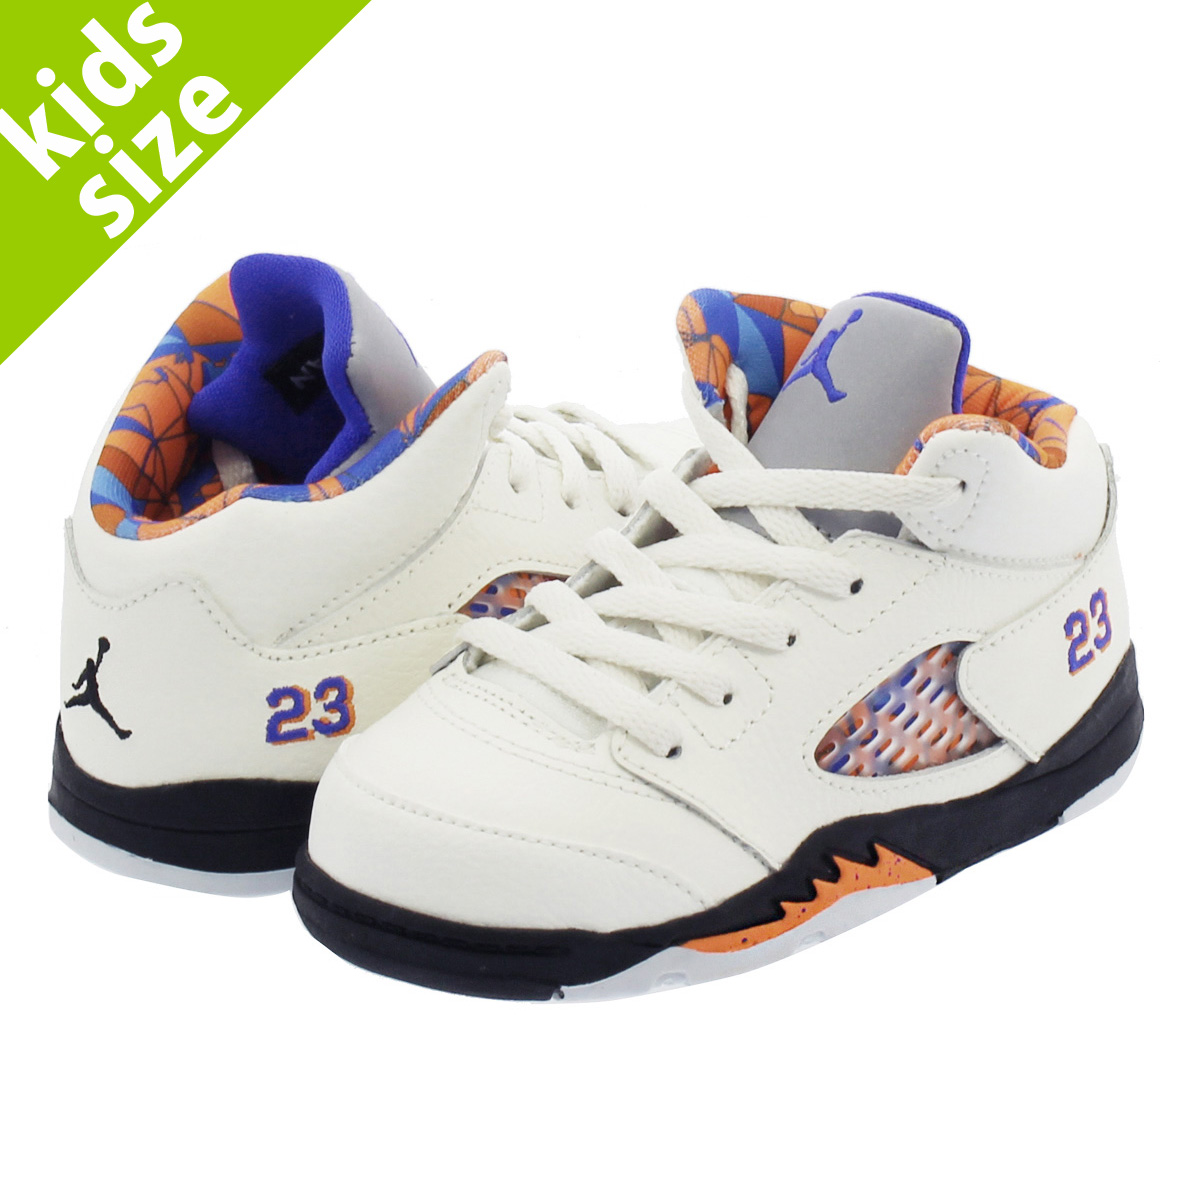 【ベビーサイズ】【8-16cm】 NIKE AIR JORDAN 5 RETRO BT ナイキ エア ジョーダン 5 レトロ BT SAIL/RACER BLUE/CONE/BLACK 440890-148